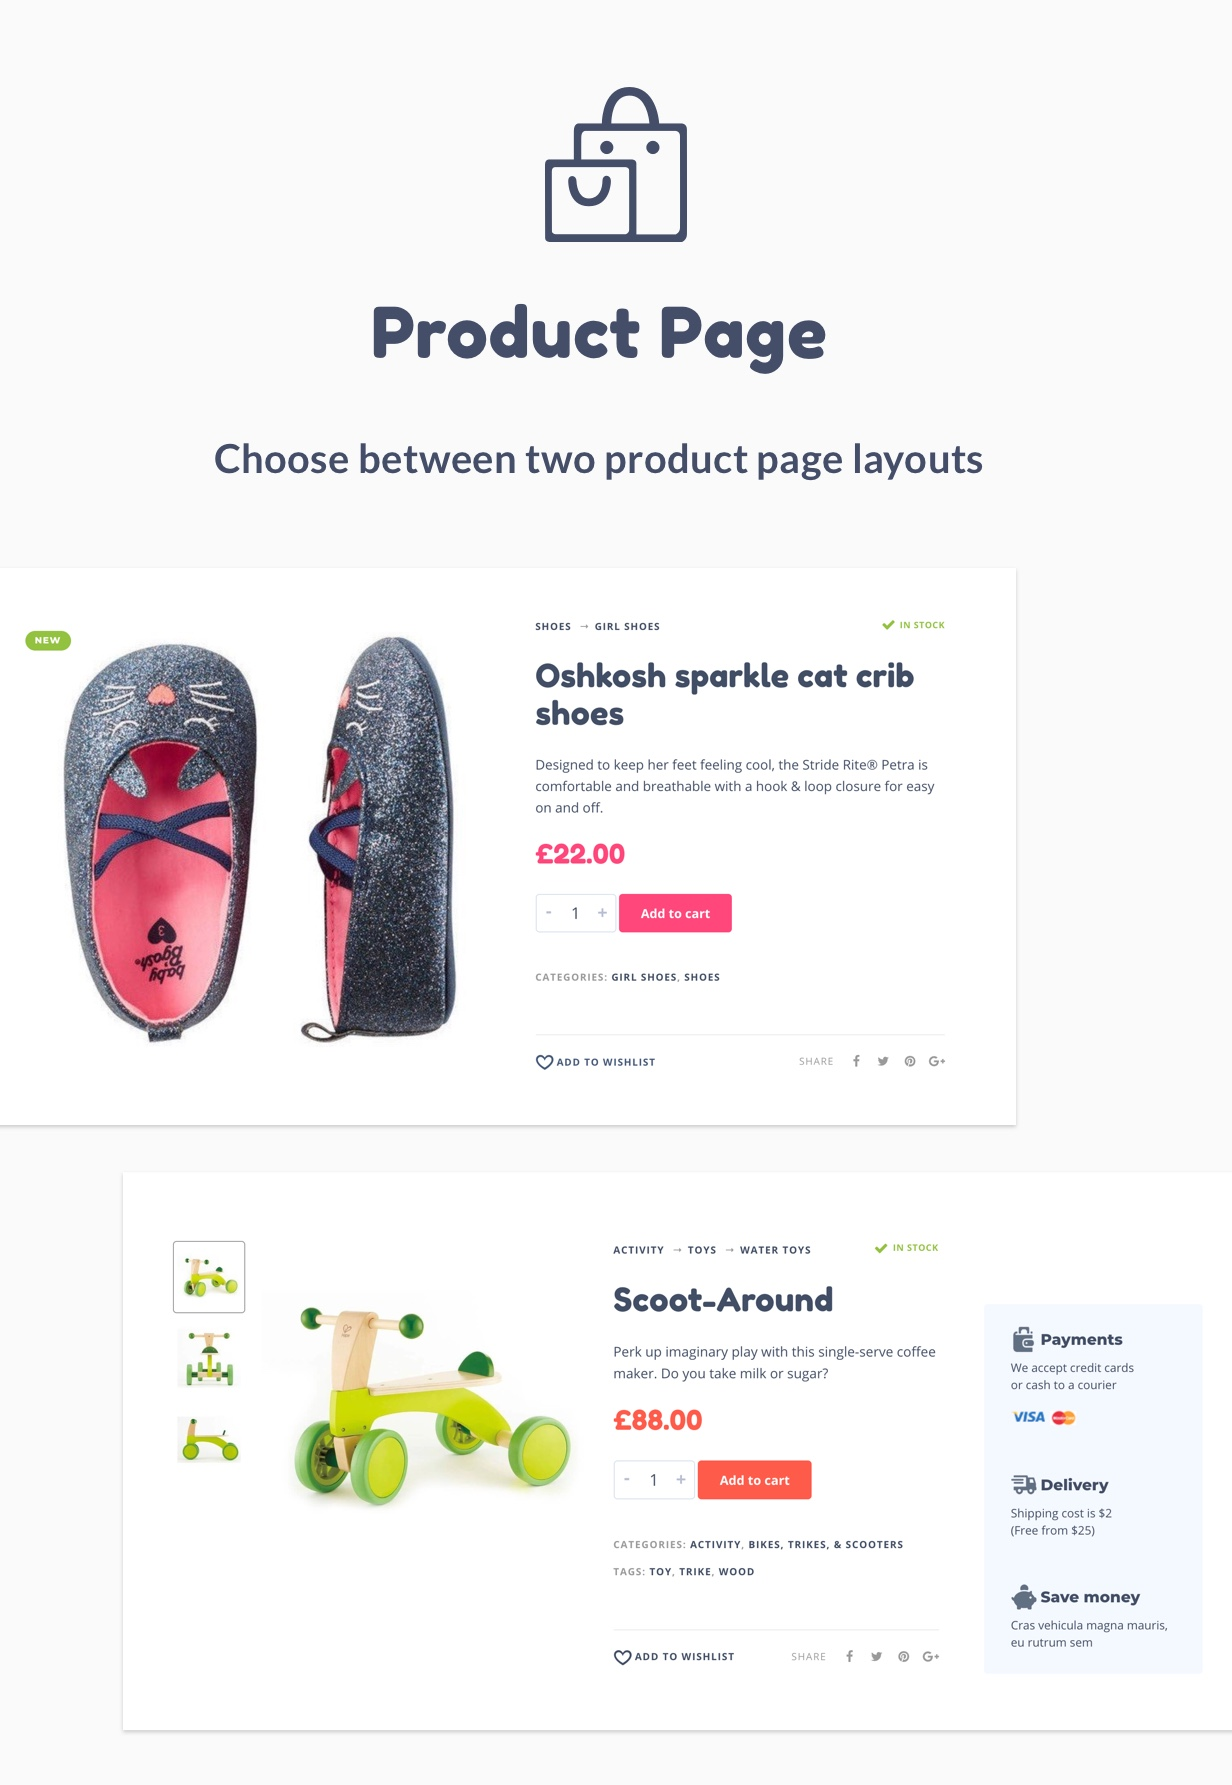 Two product page layouts